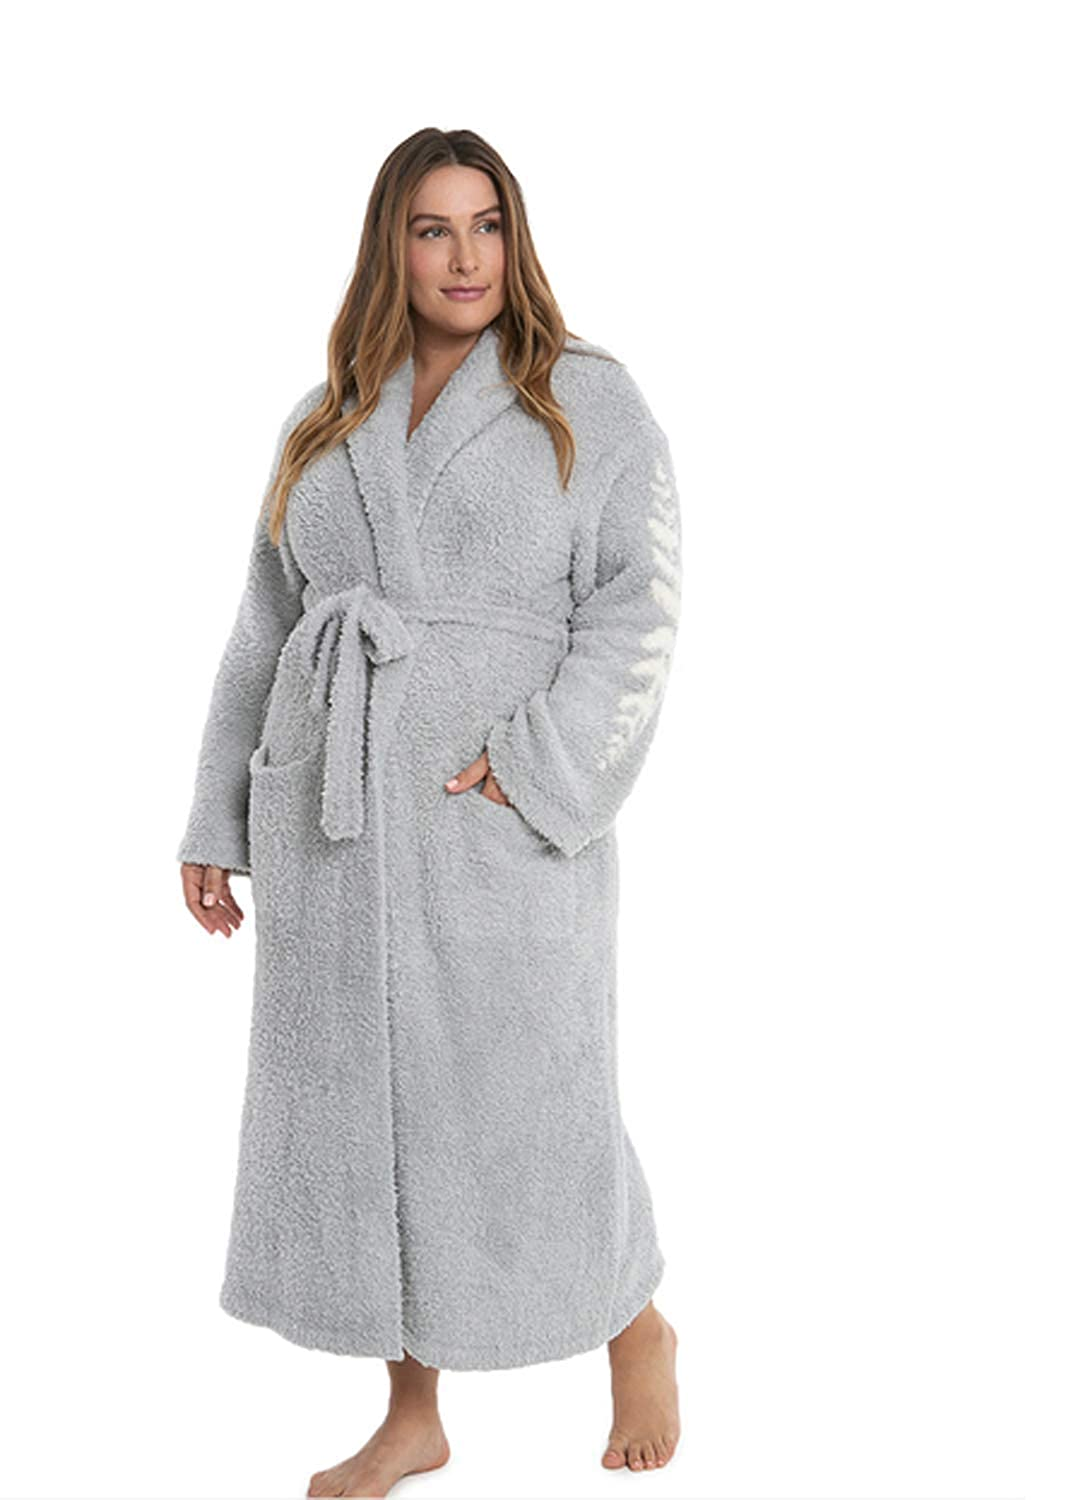 0bdb113286 Amazon.com  Barefoot Dreams CozyChic Inspiration Bath Robes for Men and  Women